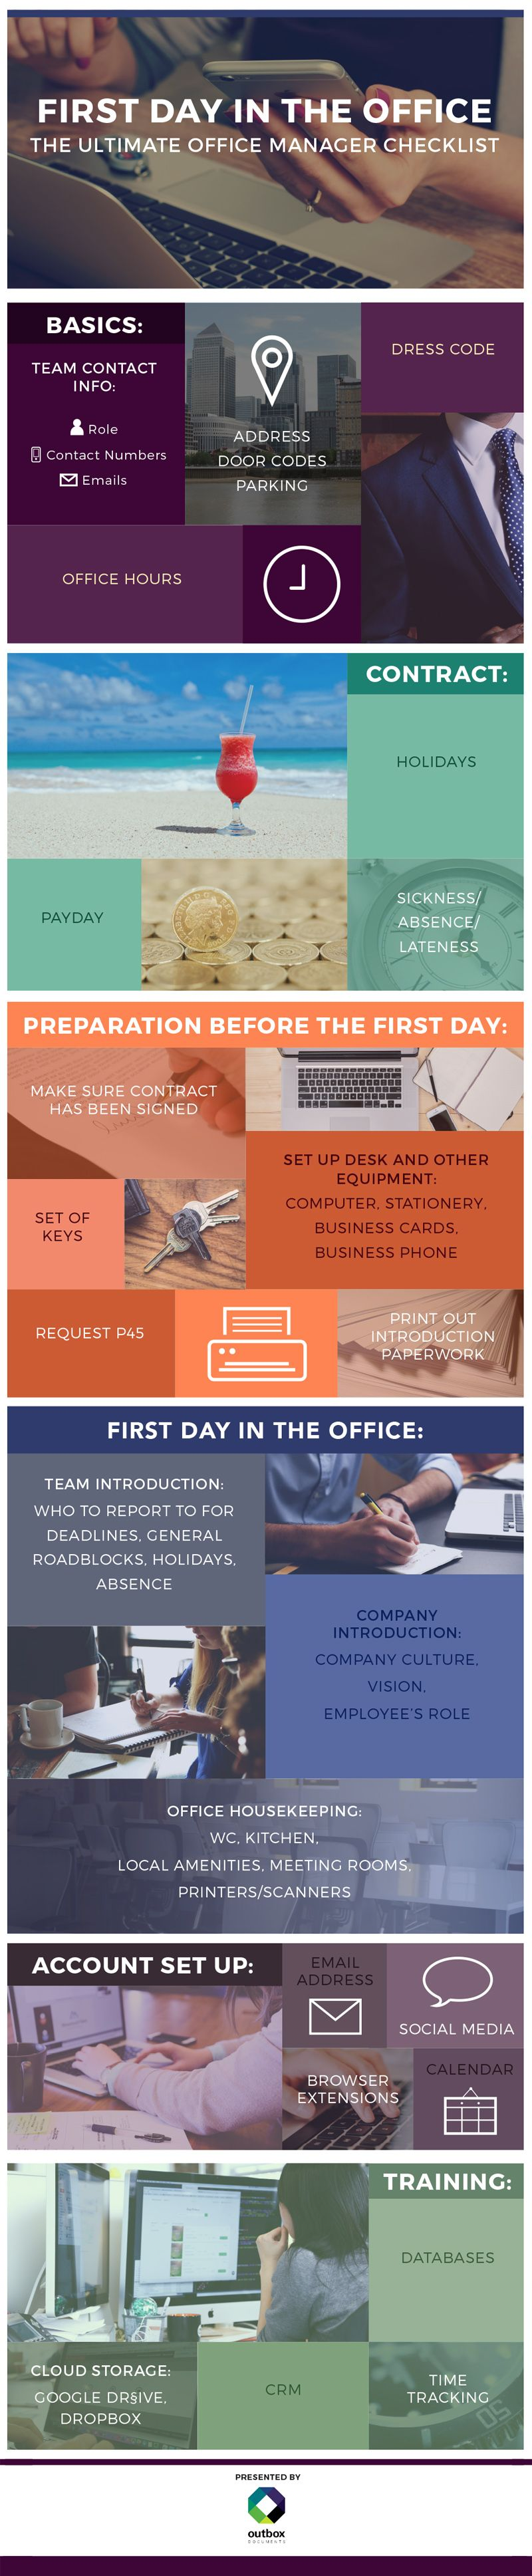 The ultimate office manager checklist infographic education the ultimate office manager checklist infographic httpelearninginfographicsultimate office manager checklist infographic altavistaventures Choice Image